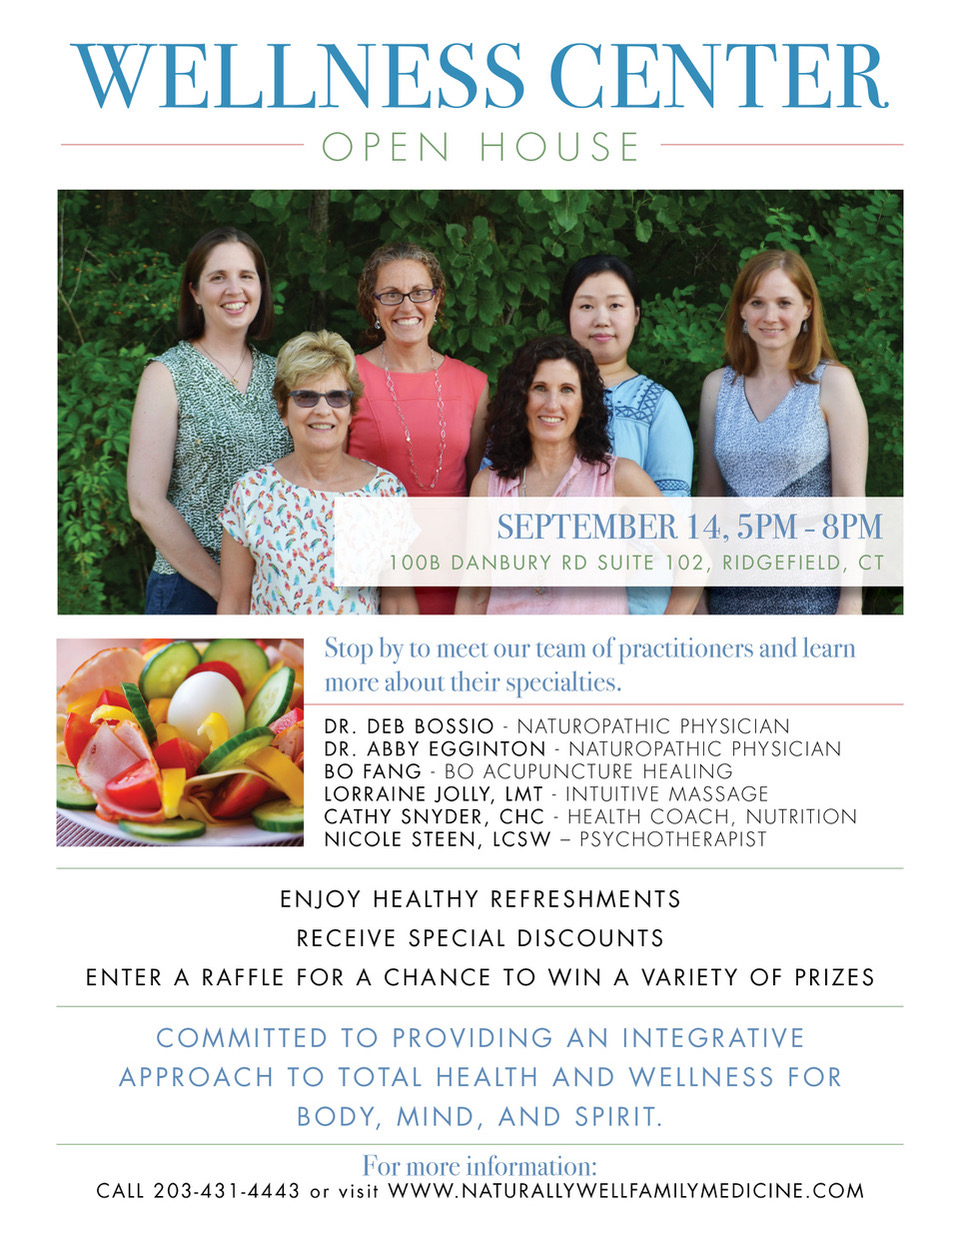 Wellness Open House, Naturally Well Family Medicine